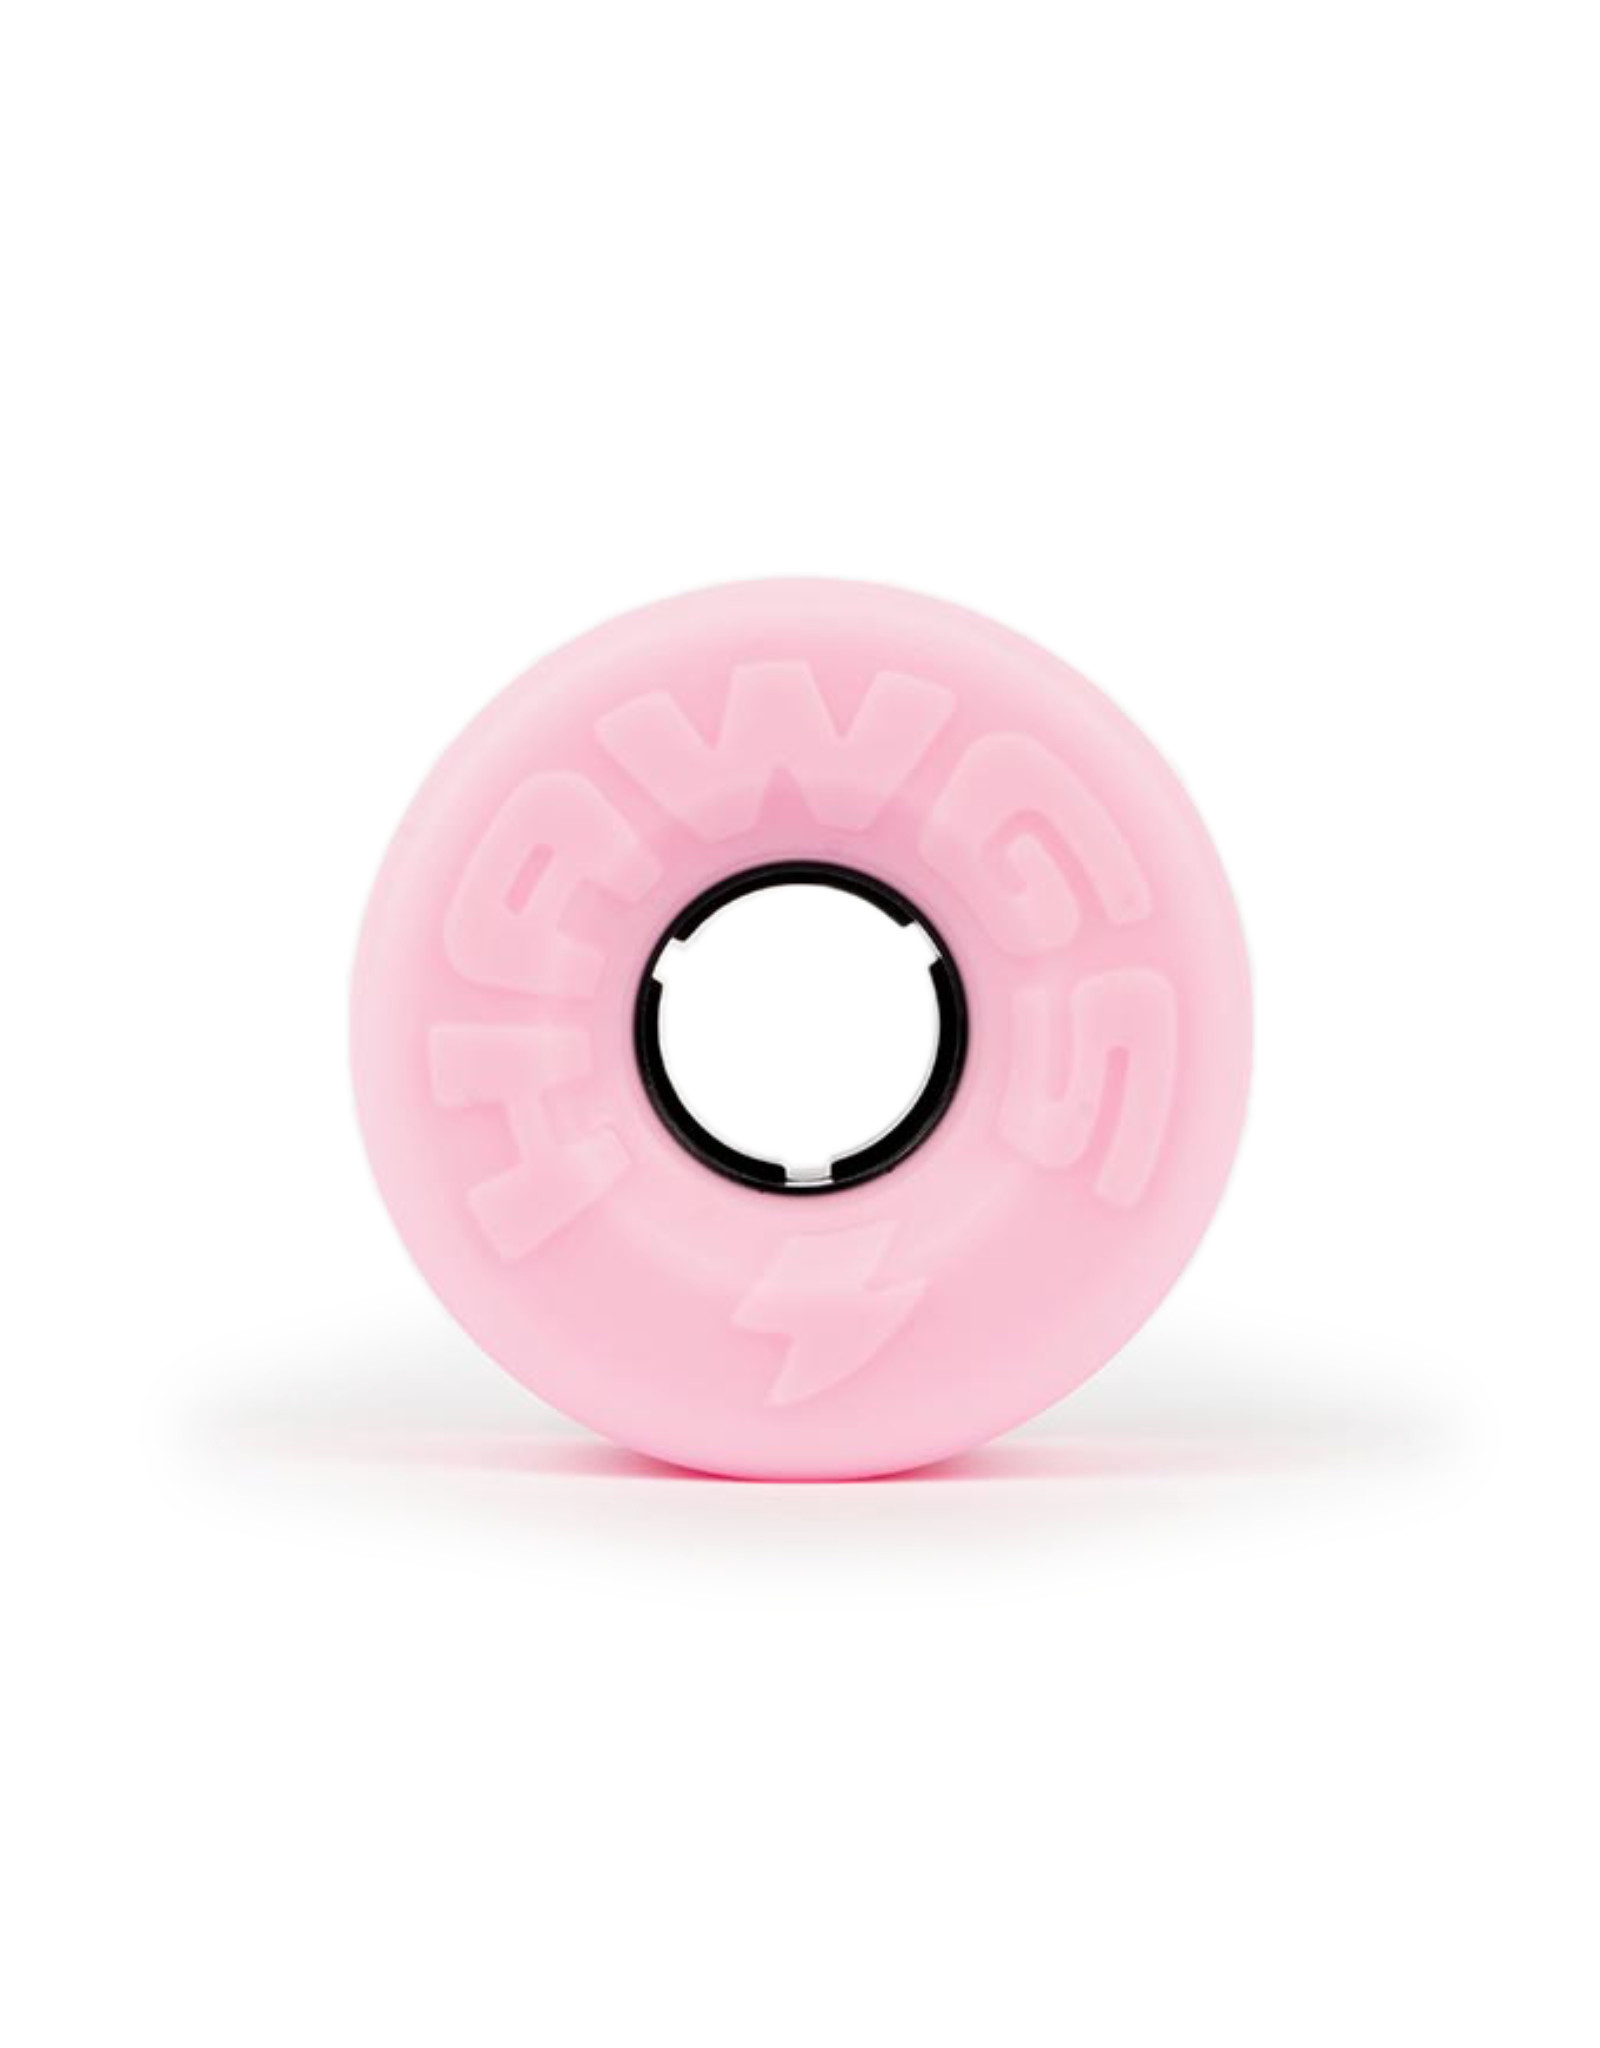 Hawgs Wheels Hawgs Easy Wheels 63 mm 78A Pink Set of 4